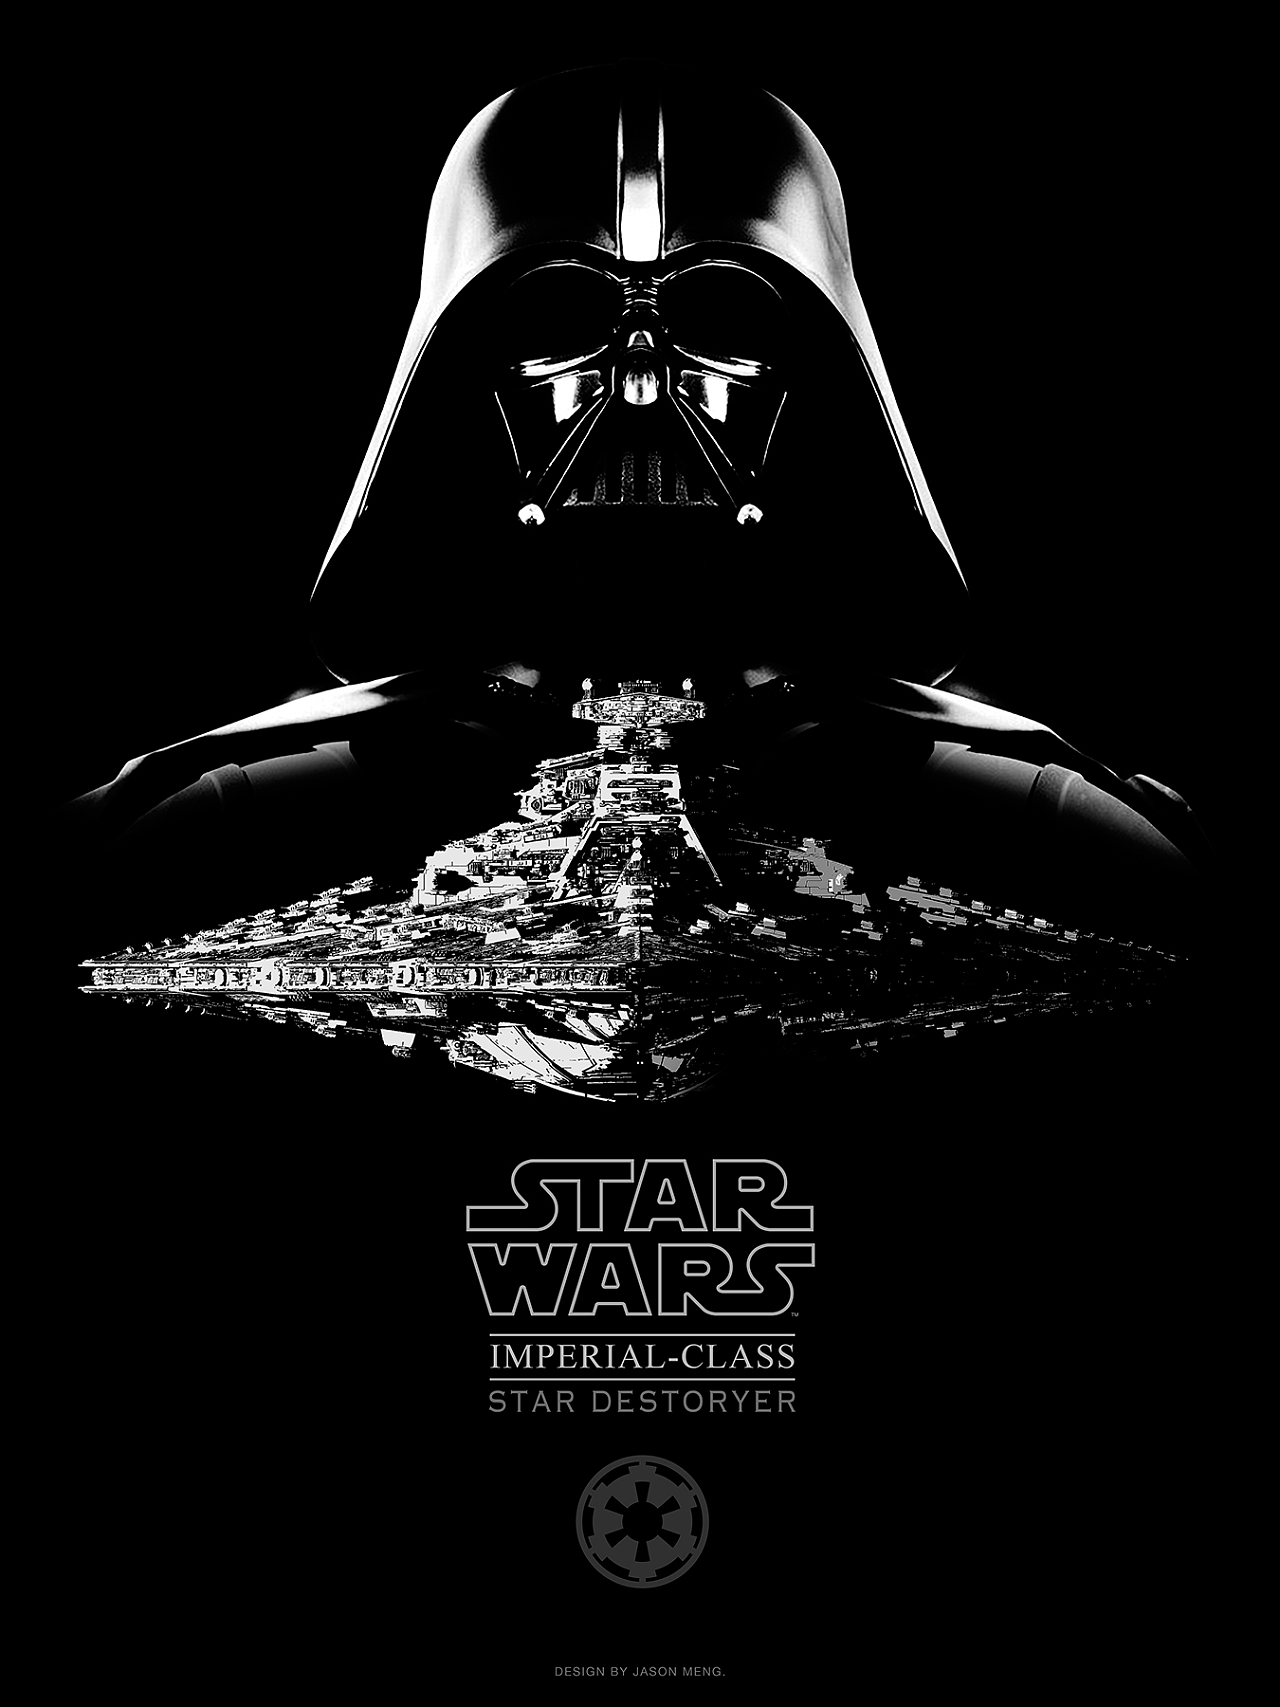 star war poster design图片